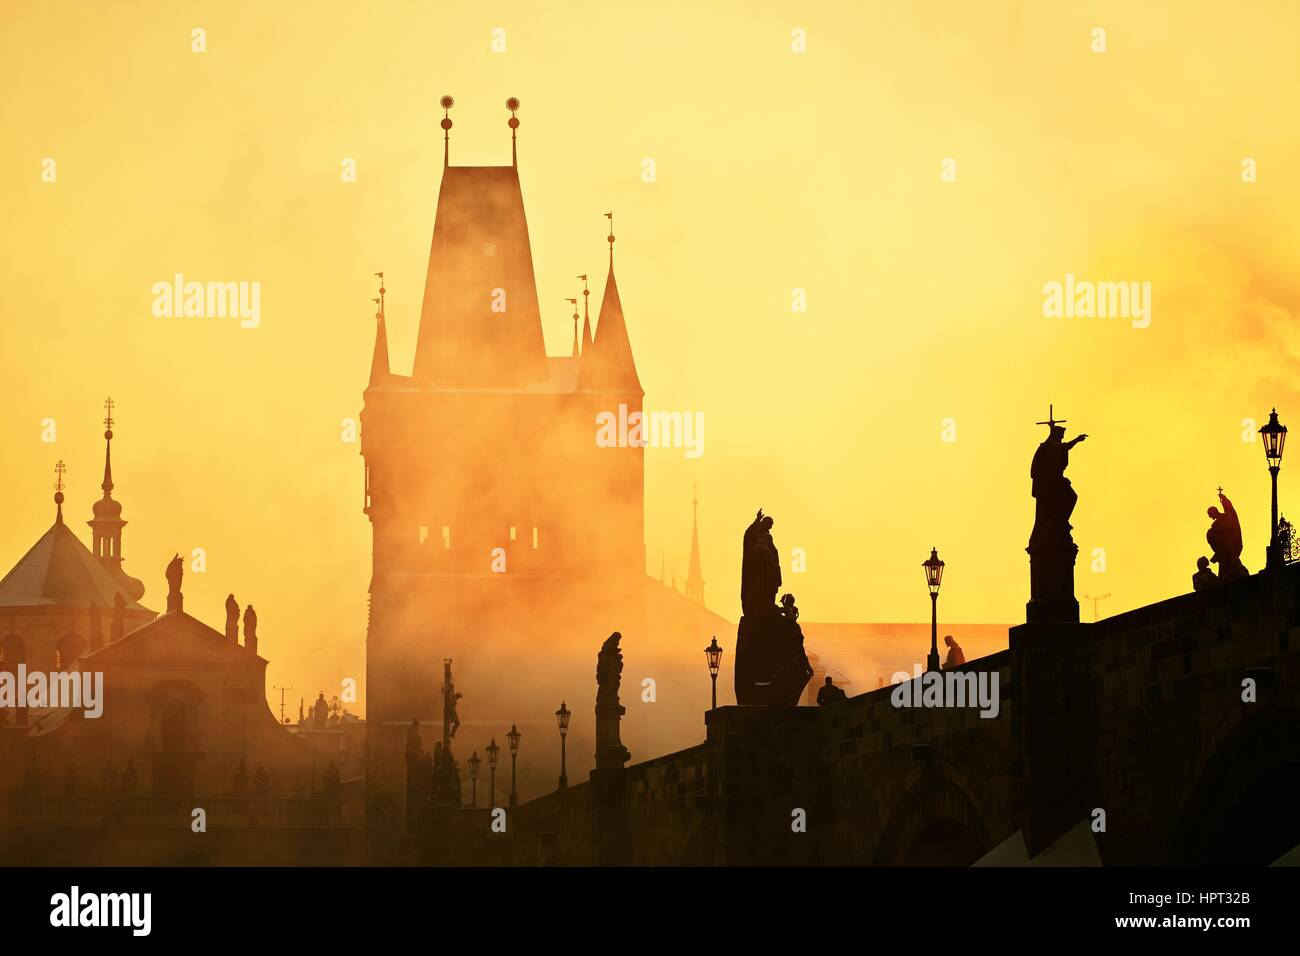 Mystery fog in sunrise. Charles bridge in Prague, Czech Republic. - Stock Image